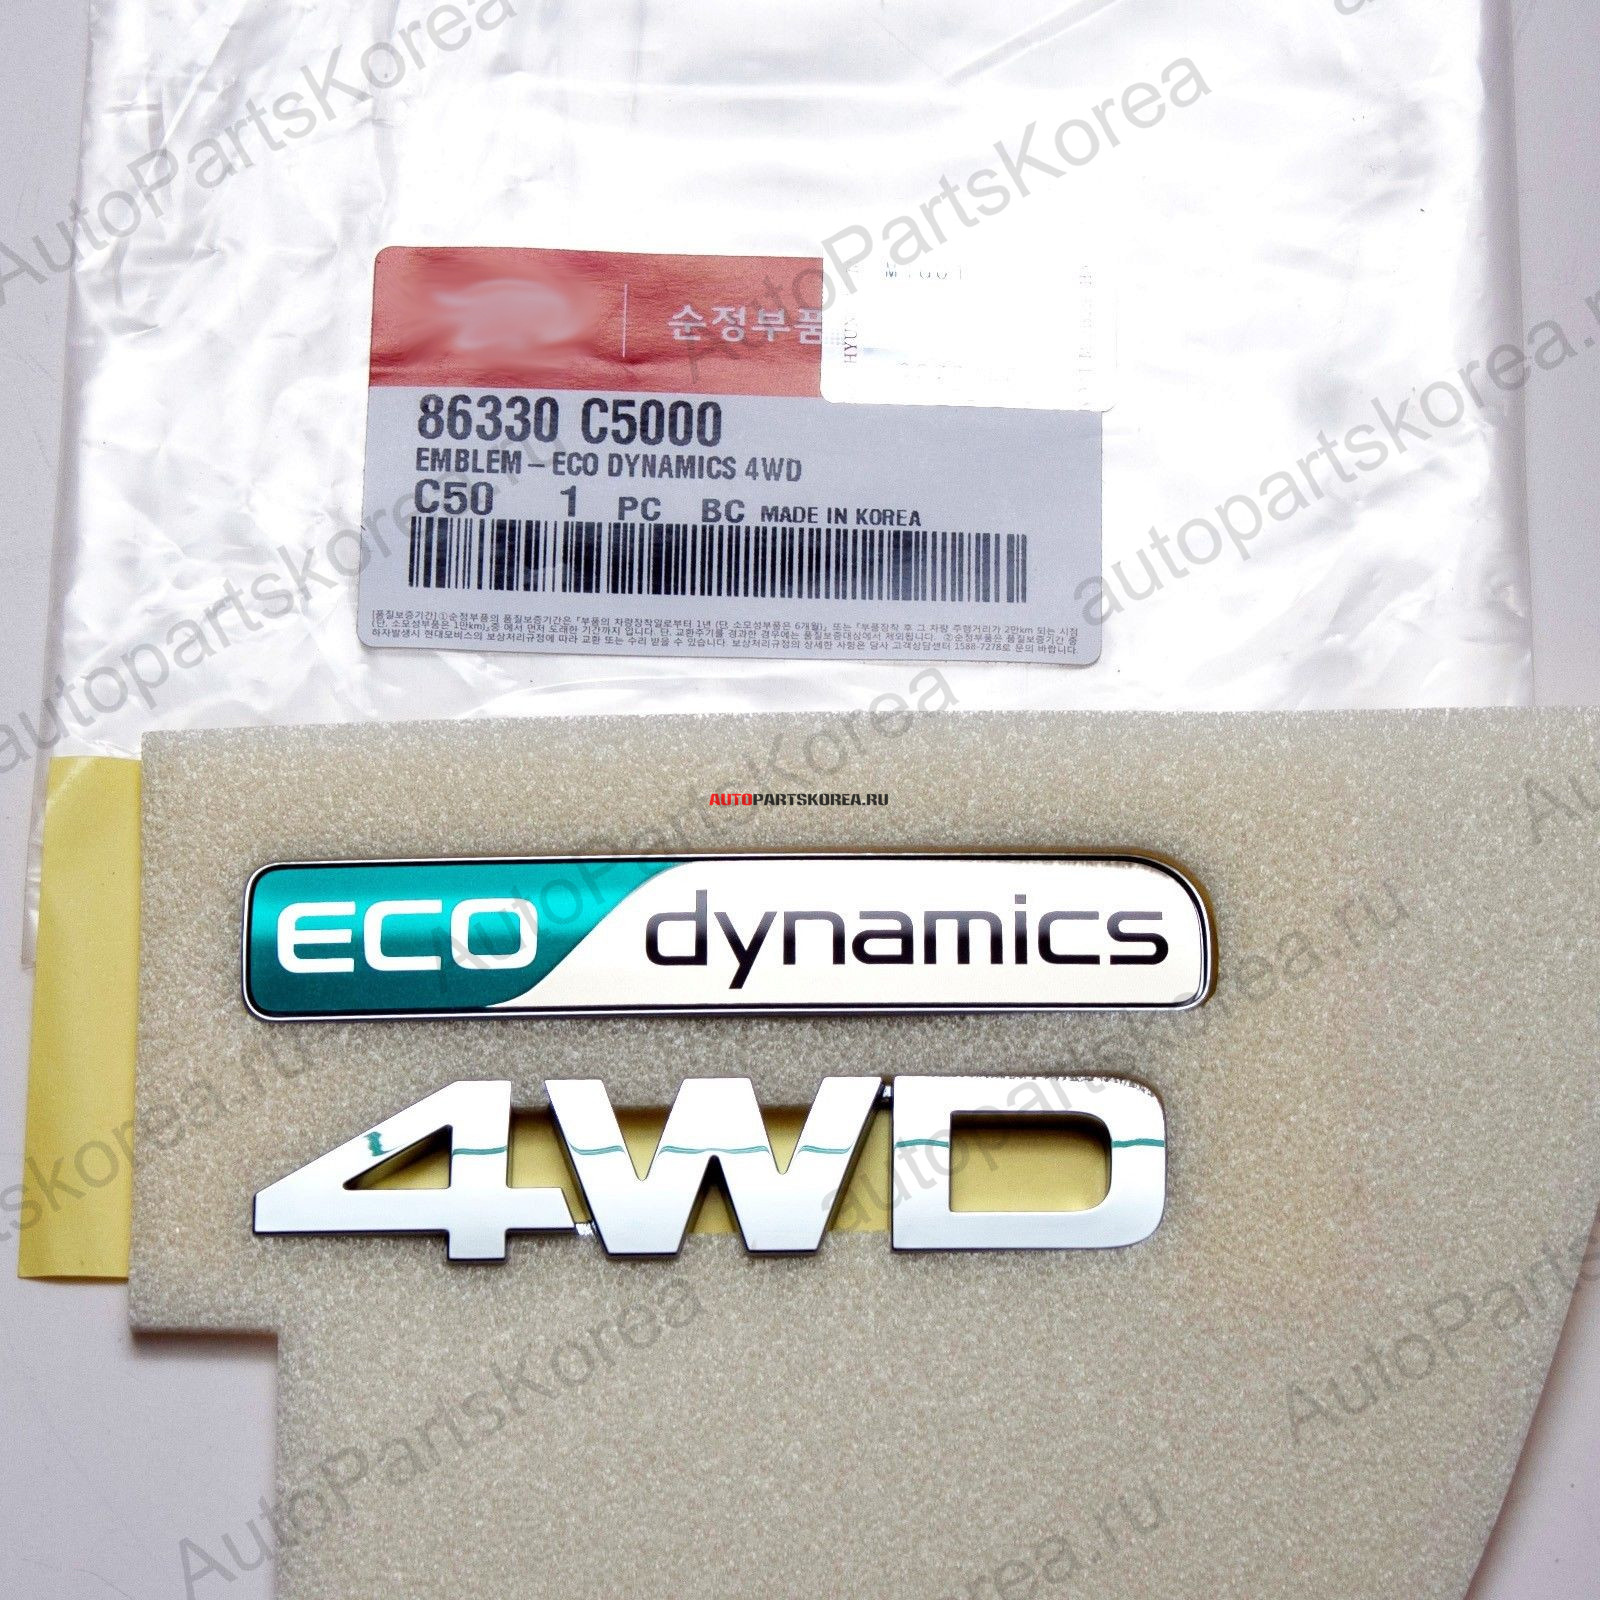 86330C5000 - Эмблема ECO dynamics 4WD